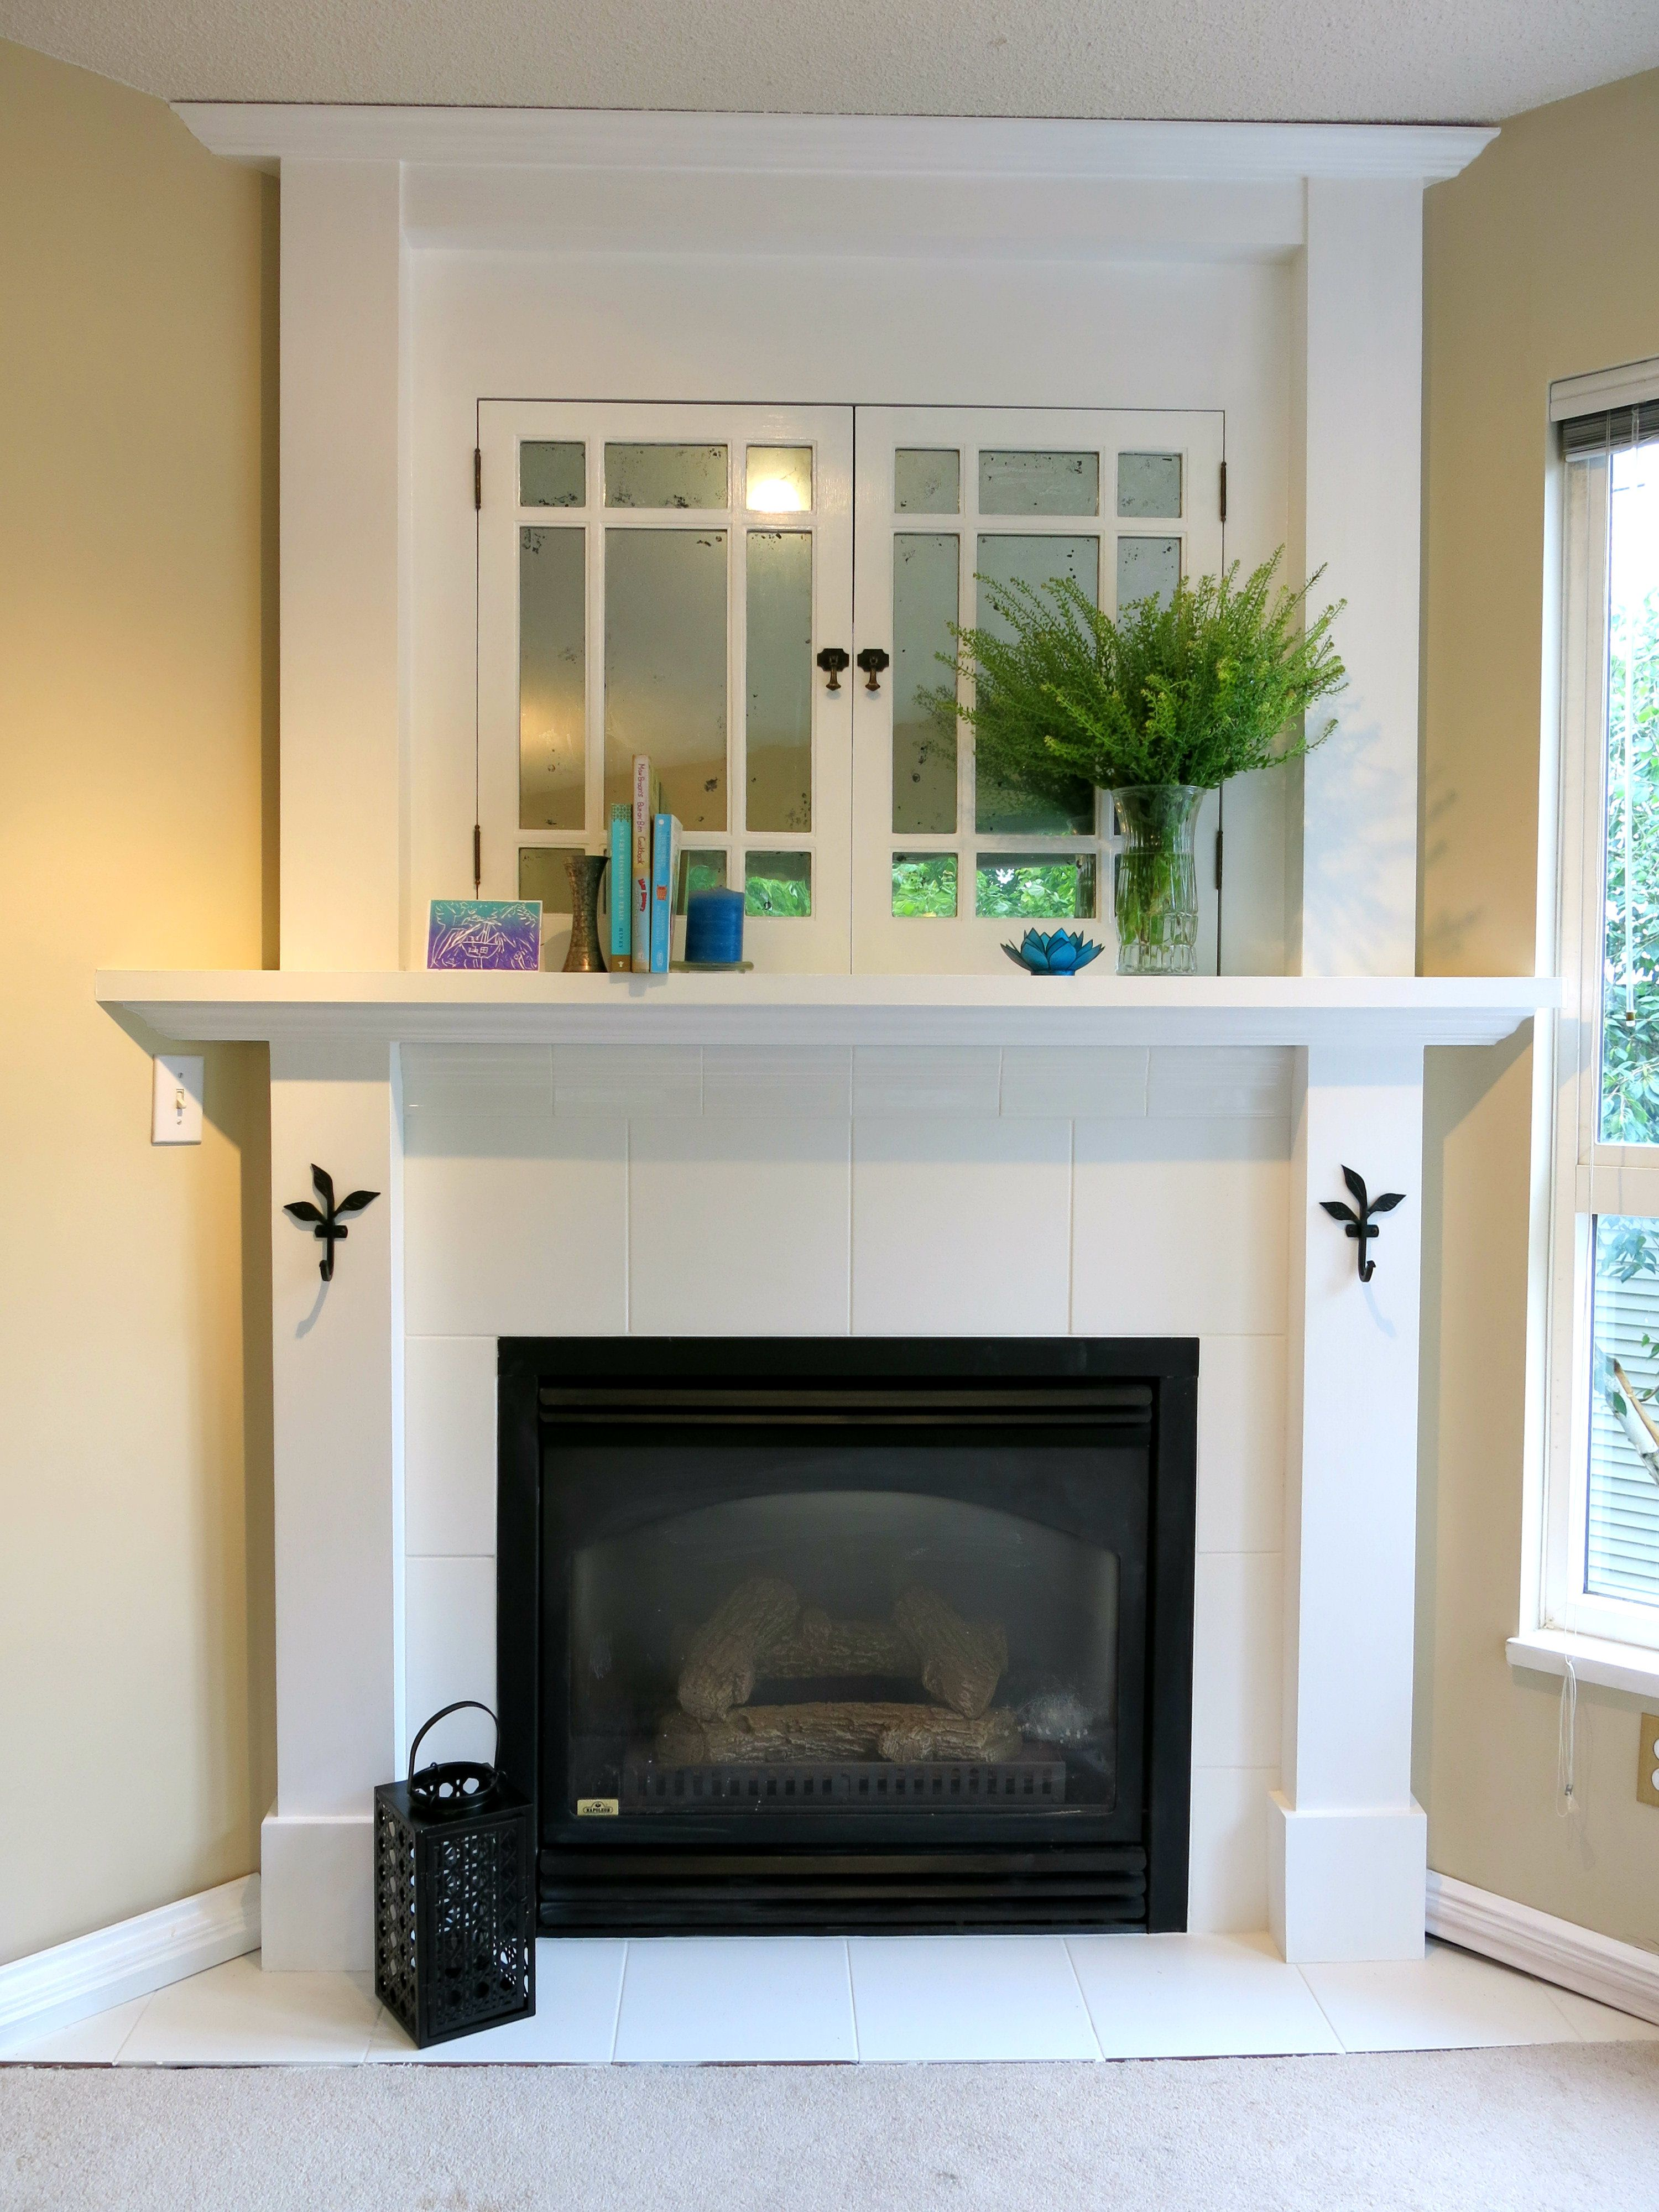 Faux mercury glass old cabinet doors, white tile fireplace